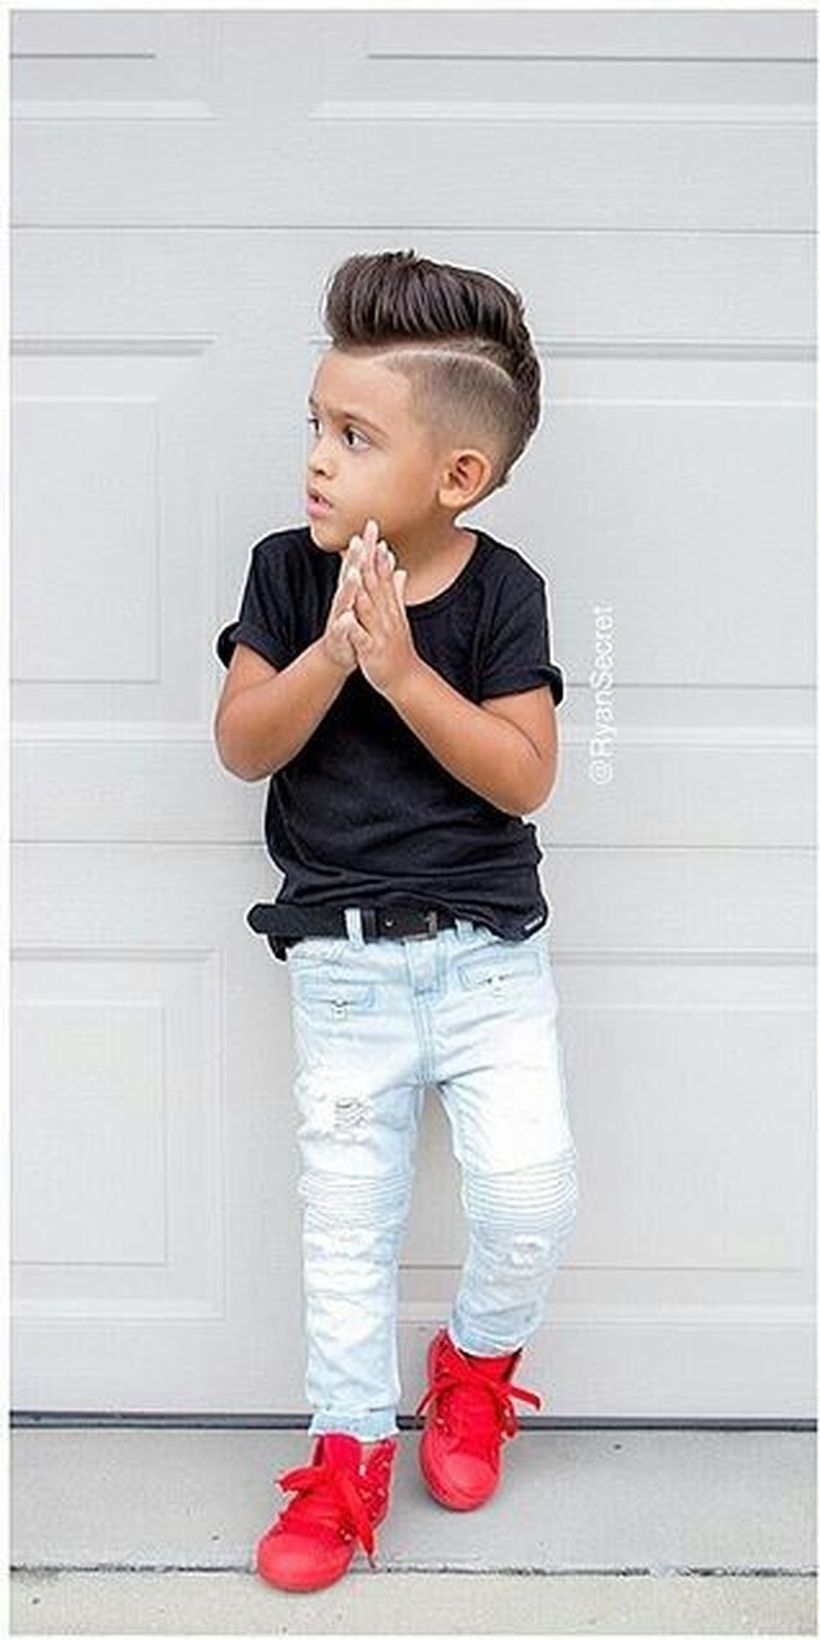 Cool Kids Boys Mohawk Haircut Hairstyle Ideas 36 Childrens Fashion Boys Summer Outfits Kids Little Boy Hairstyles